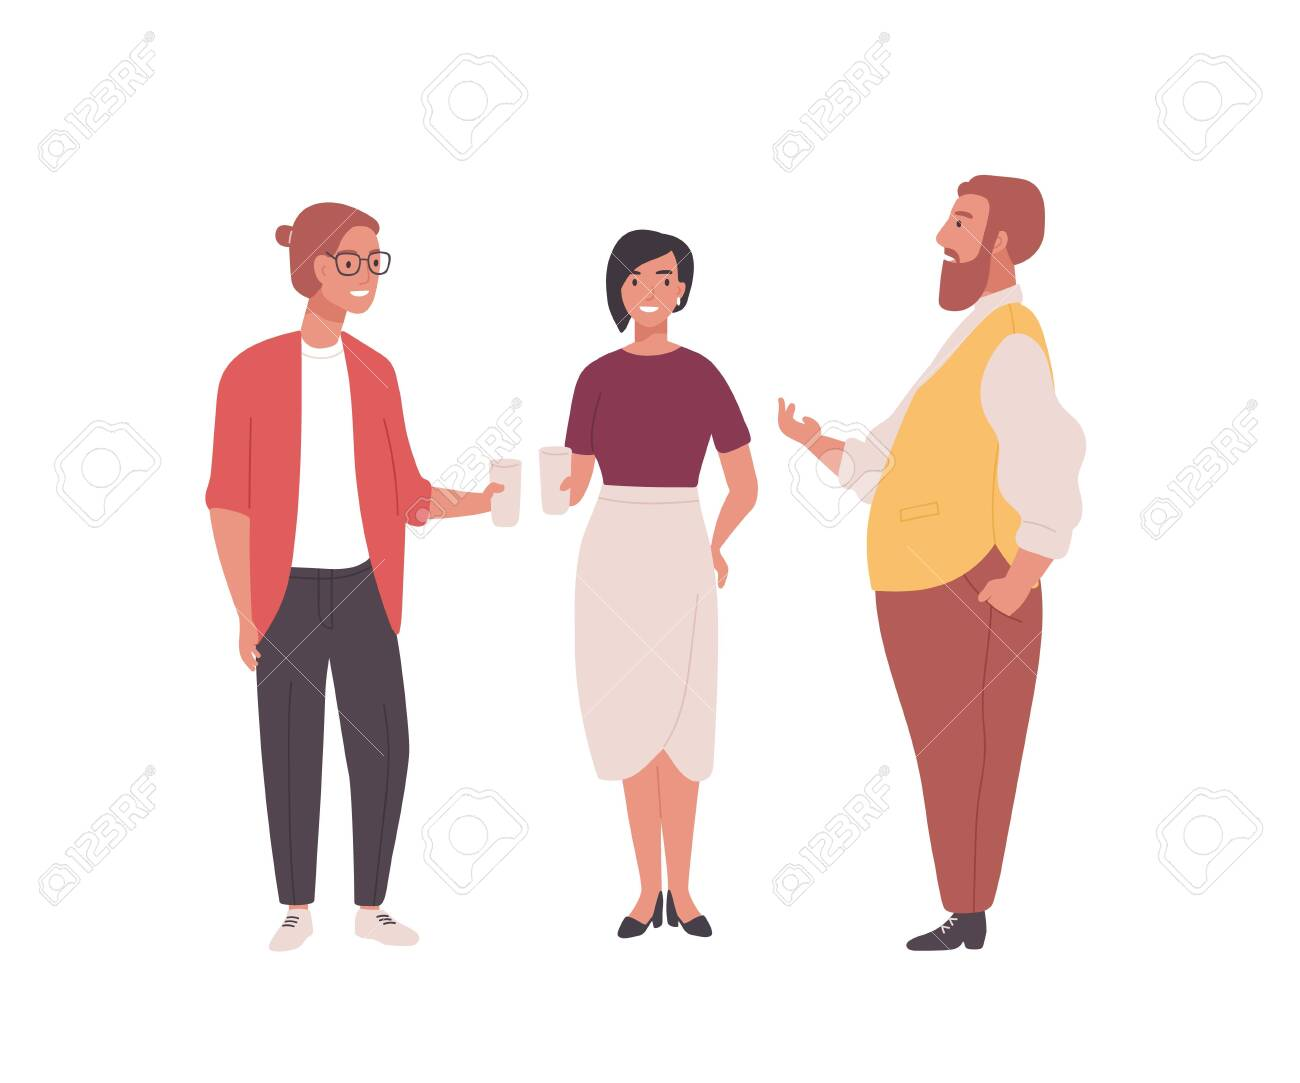 Group of employees, clerks or office workers. Funny men and women standing together and talking. Professional conversation among colleagues during coffee break. Flat cartoon vector illustration - 128183689